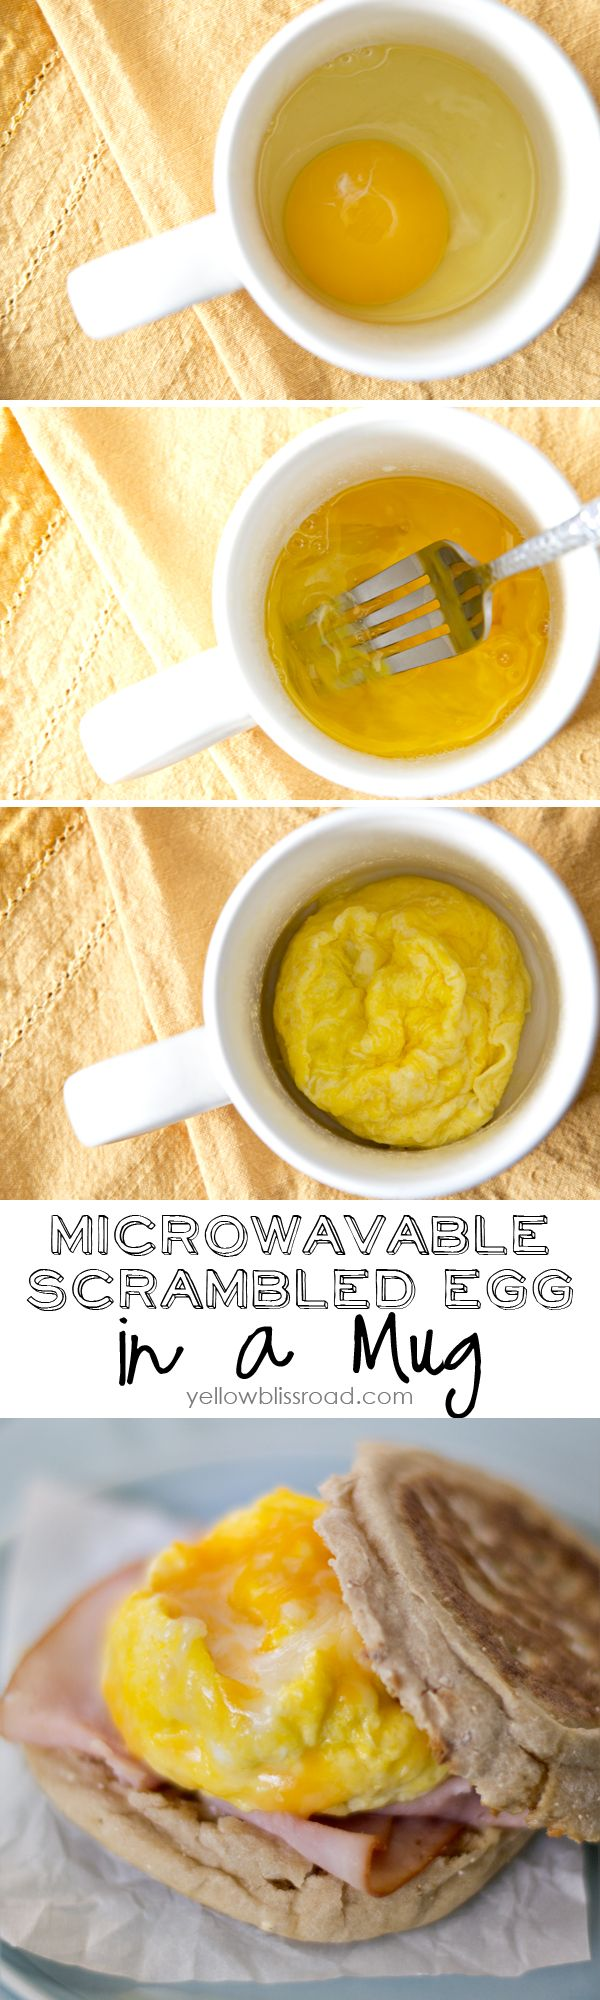 Scrambled Egg in a Mug and a 2 Minute Breakfast Sandwich ......... Spray a microwave safe mug with cooking spray. Crack the egg into the mug and lightly scramble. Season with a pinch of salt and pepper to taste. Place the mug in the microwave and cover with a wet paper towel. Cook on high for 30-40 seconds. Toast the English Muffin to your liking. Spread butter if desired. Top with slice of ham, the egg and shredded cheddar cheese and replace the top of the muffin........  Enjoy hot!..